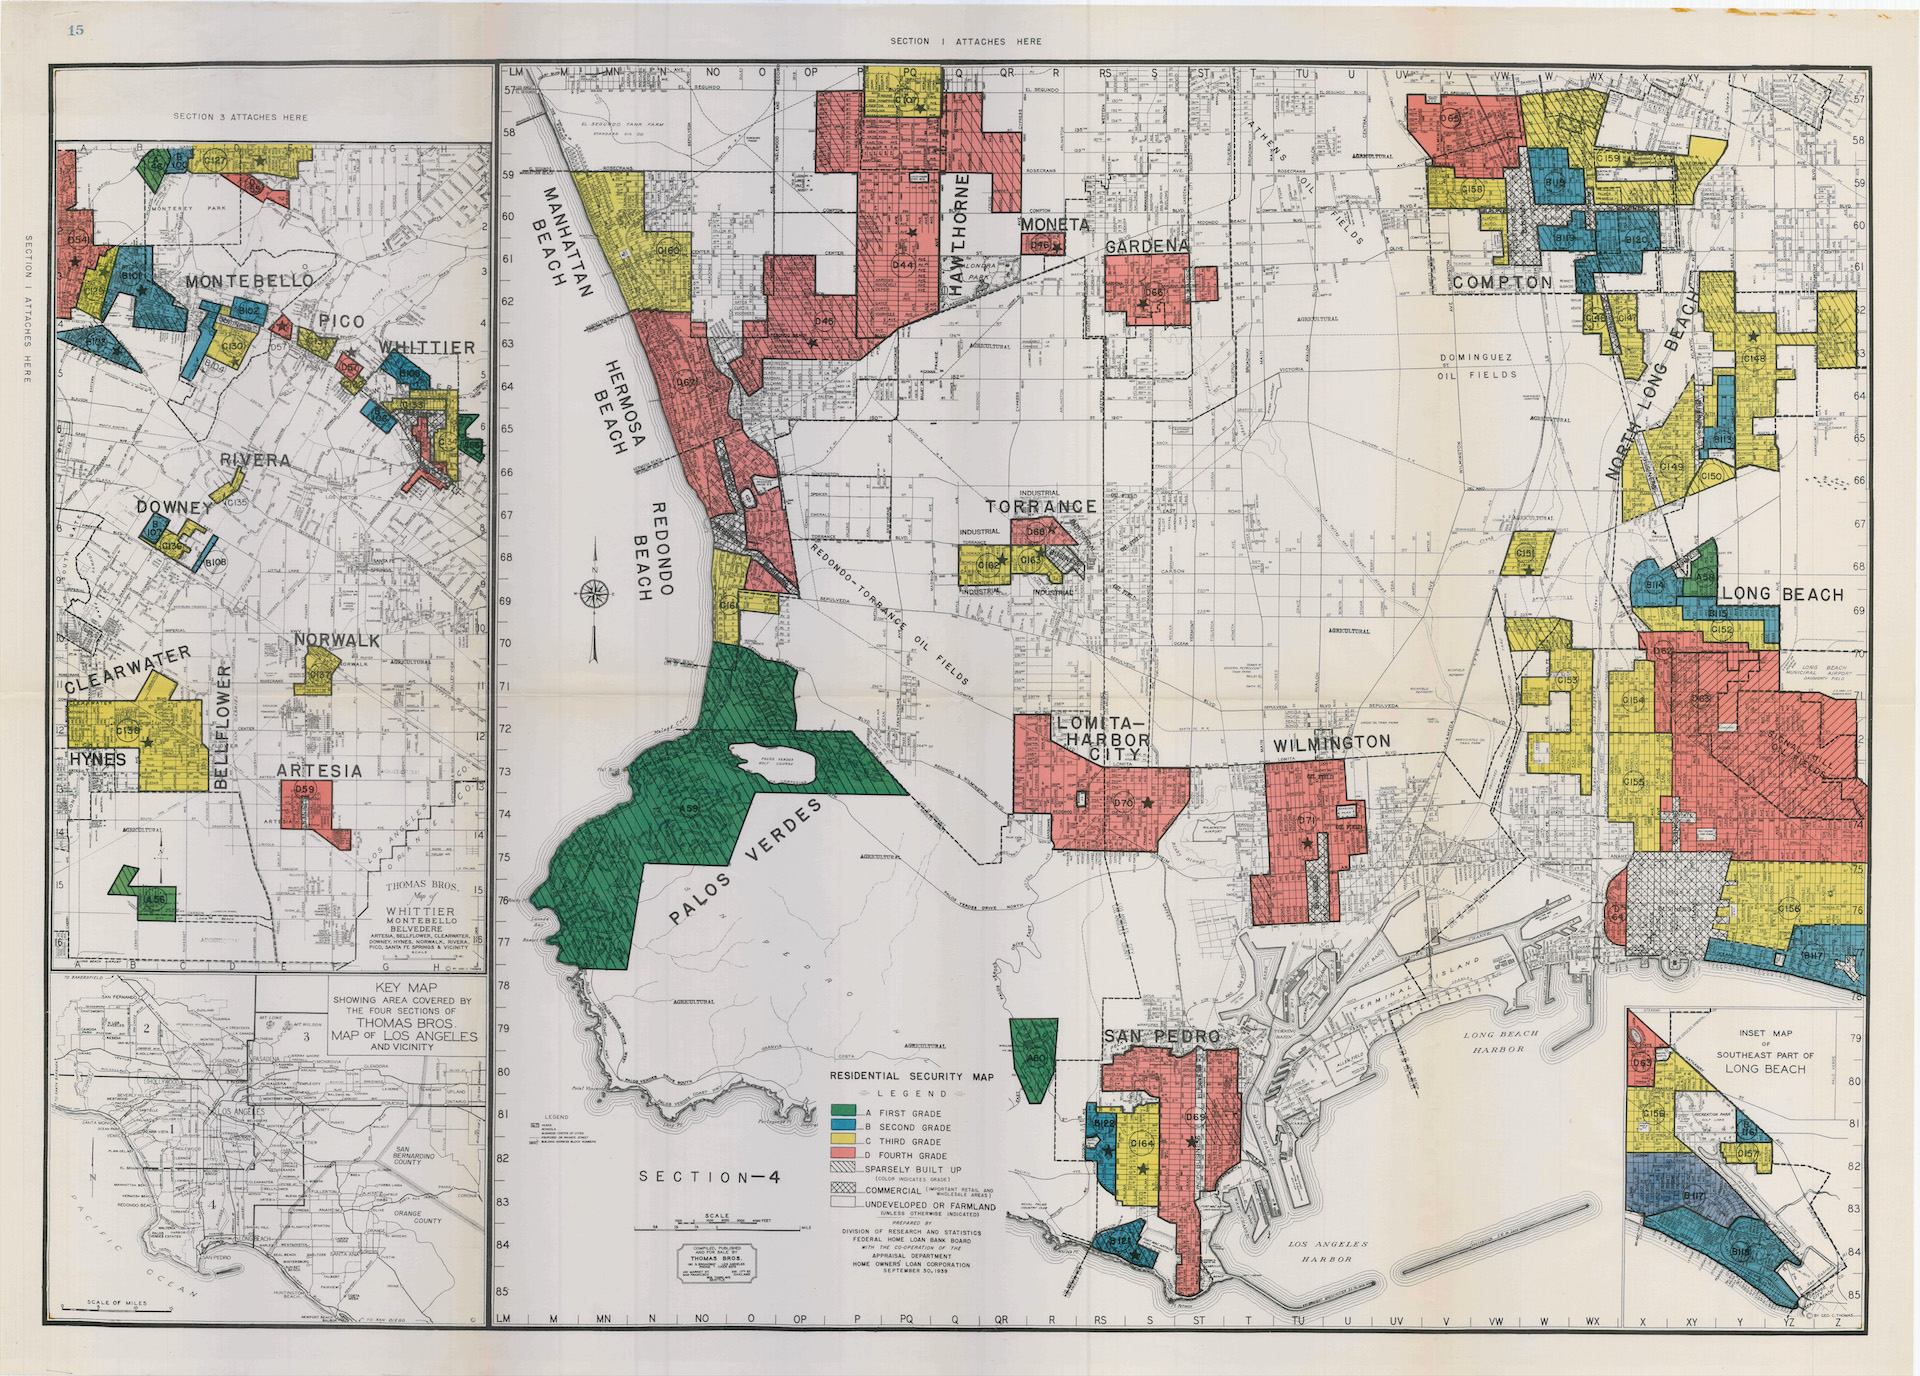 Segregation In The City Of Angels A  Map Of Housing - Los angeles map venice beach